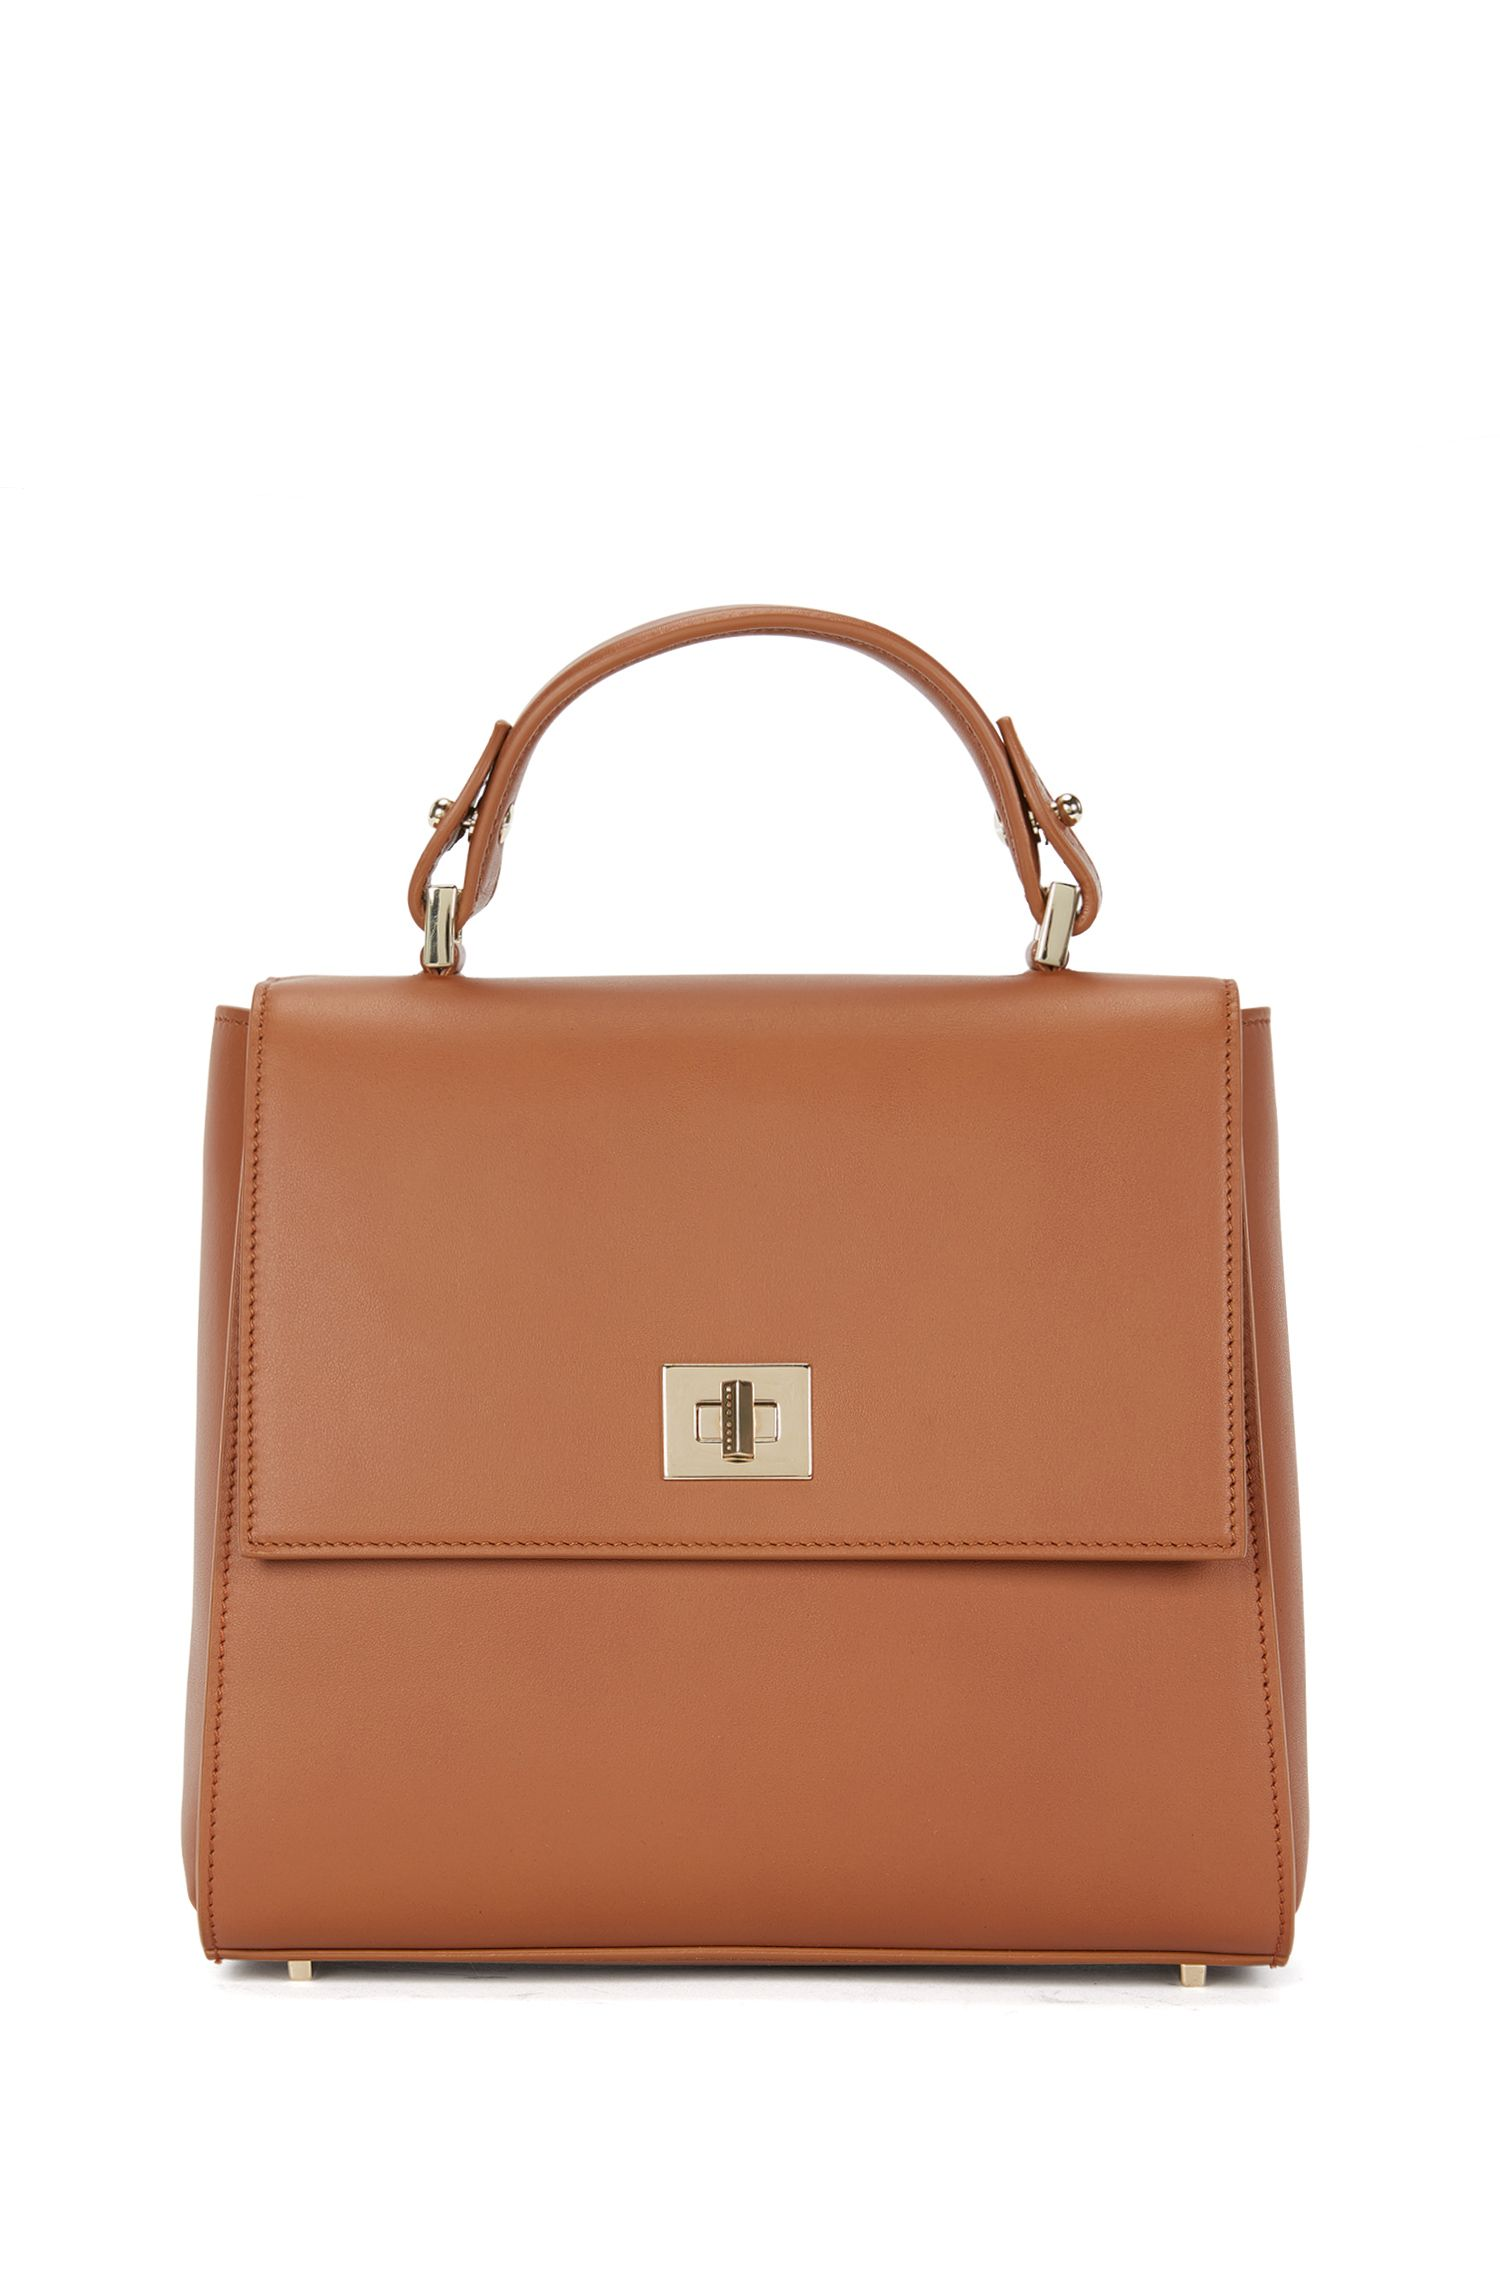 Small-format BOSS Bespoke handbag in smooth leather